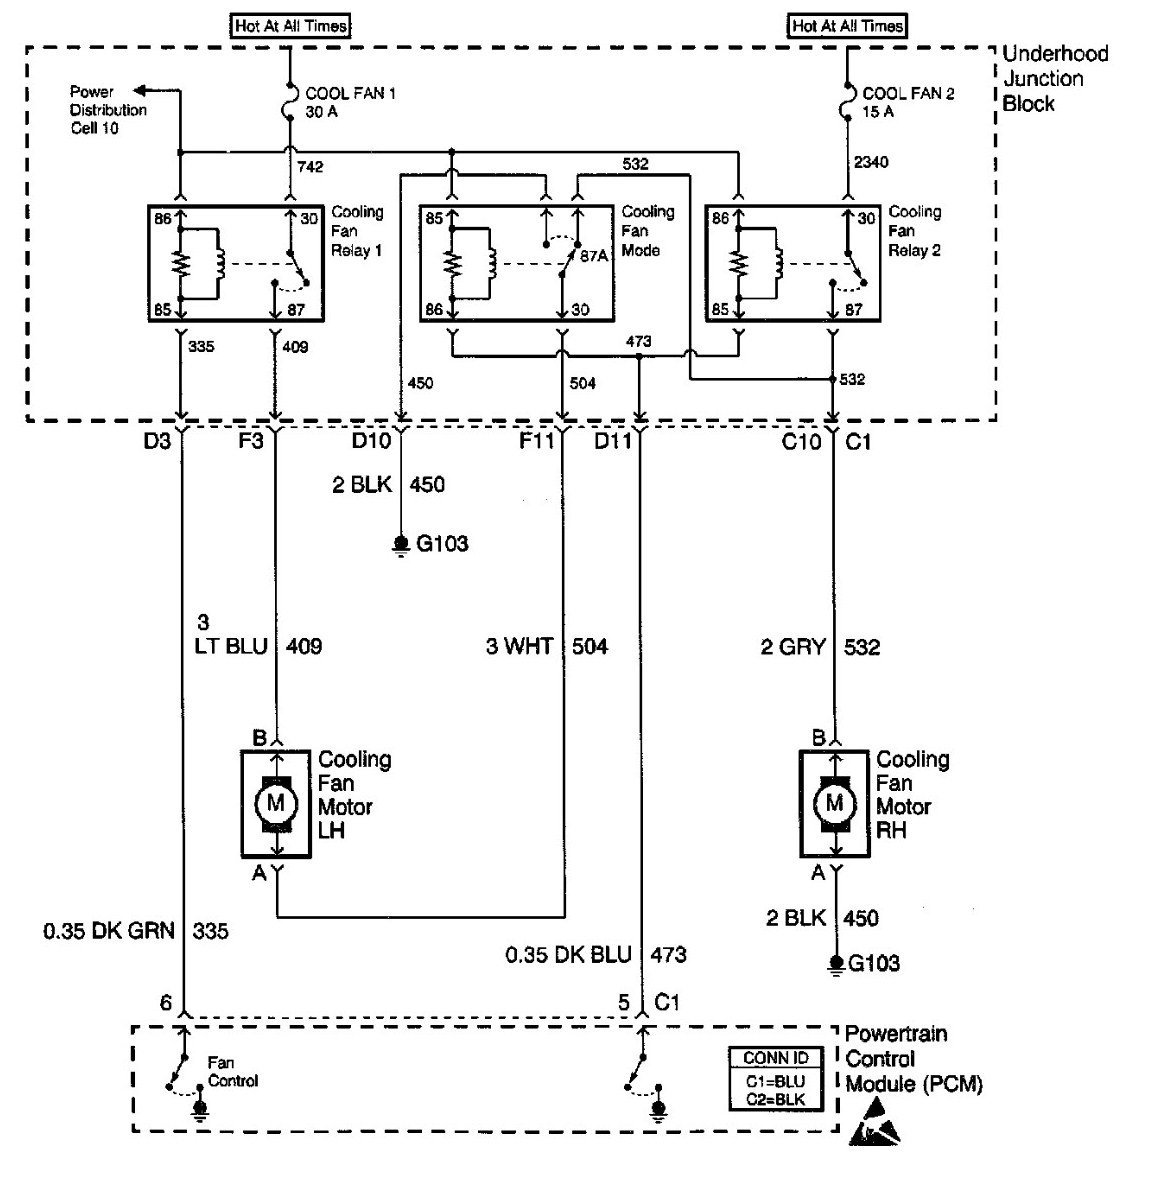 Radiator Fan Wiring Diagram : Malibu cooling fans wiring diagram